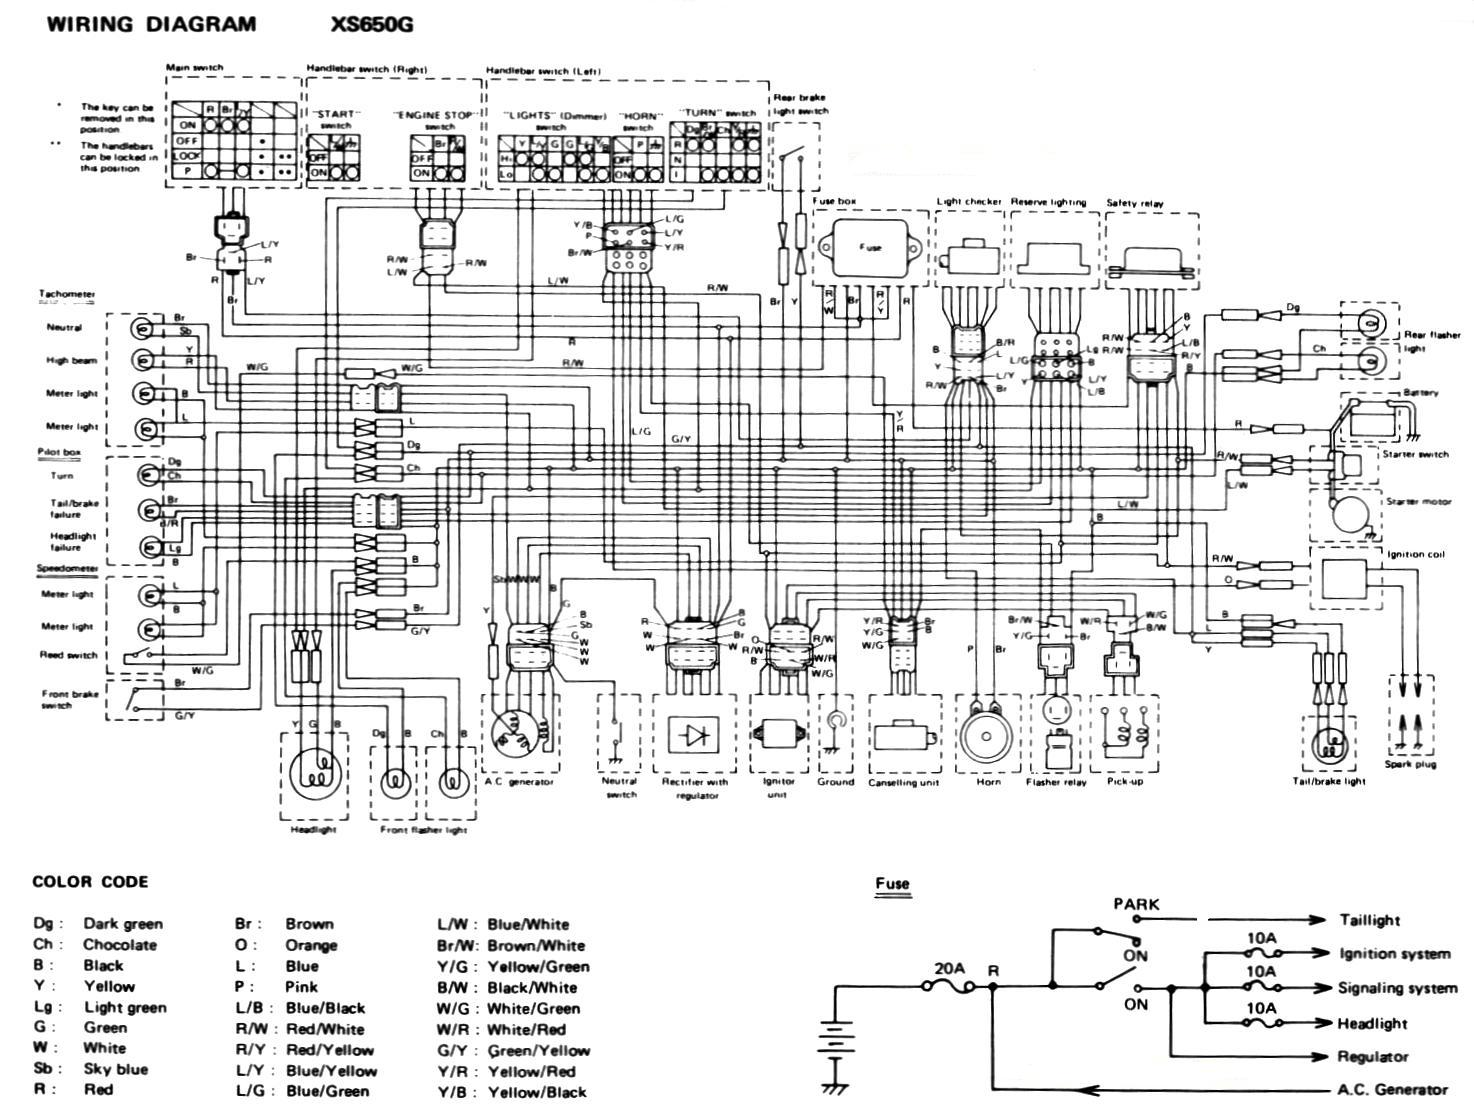 80XS650G wiring diagrams 1983 yamaha xs650 wiring diagram at bakdesigns.co